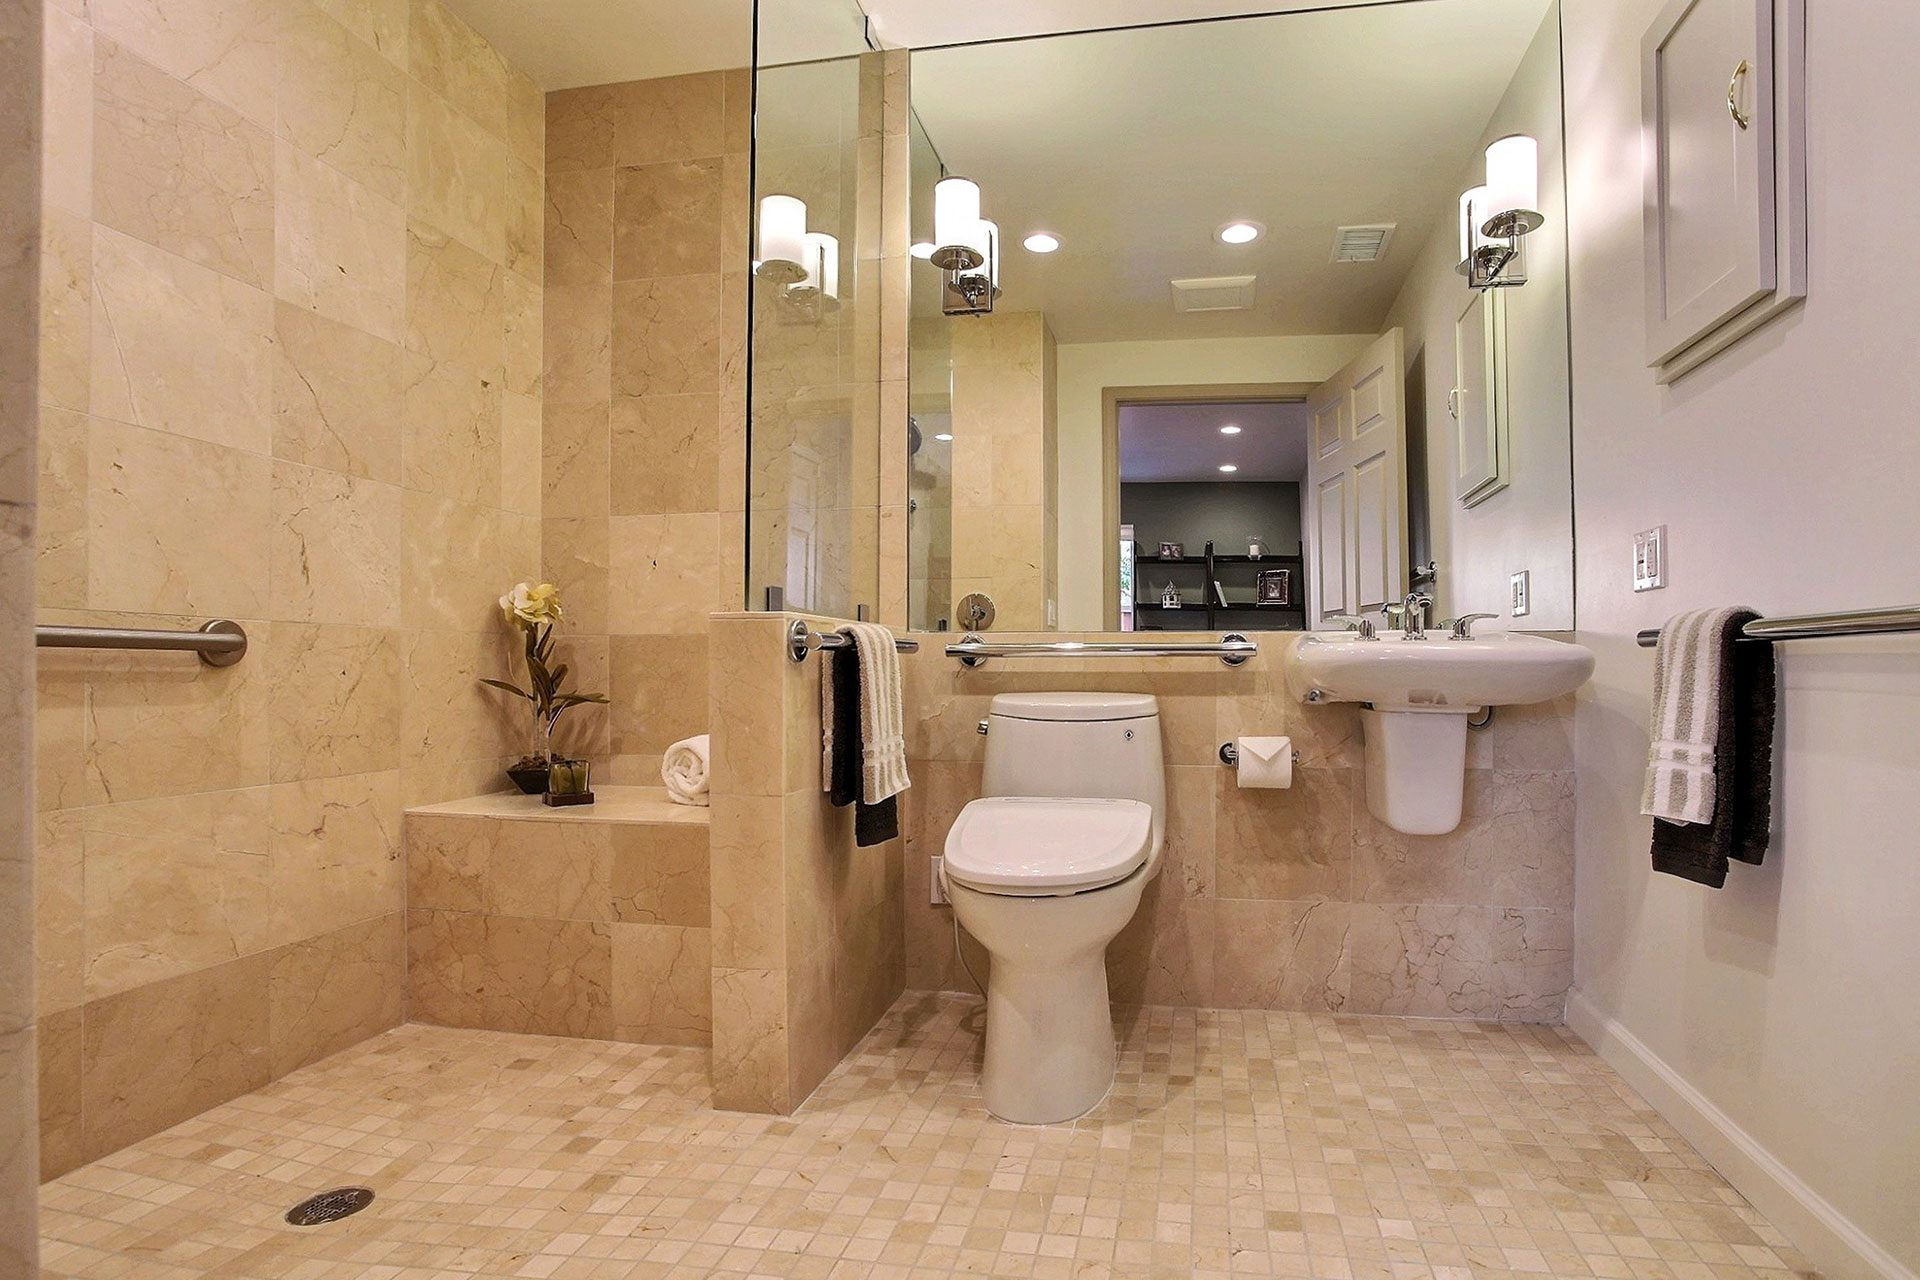 Bathroom remodeling gordon reese construction inc for Bath remodel lafayette la